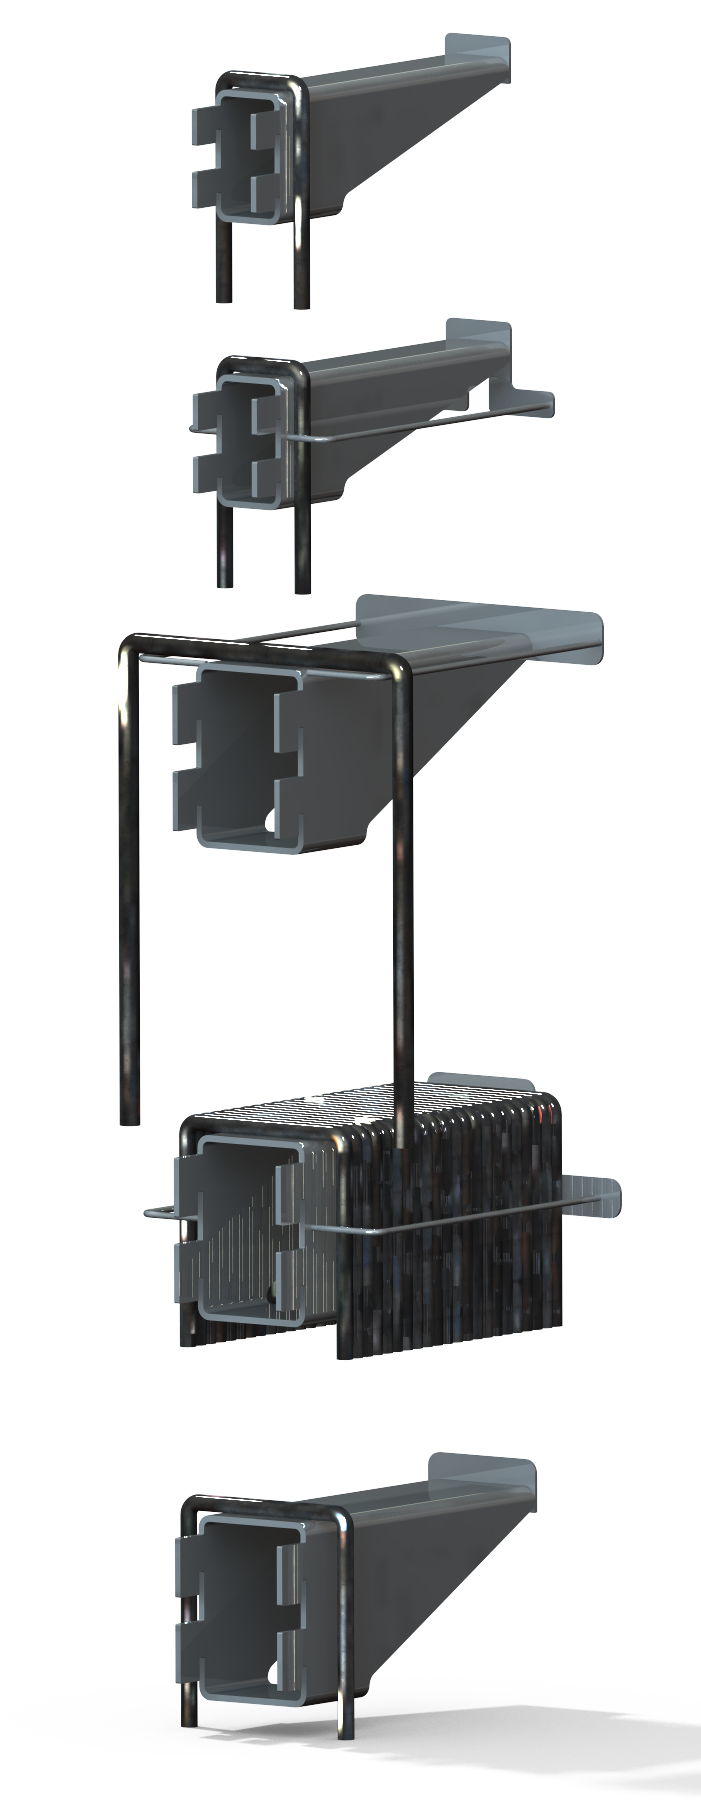 U-Bolt Rack Module Set - Back View - Designed in SolidWorks - Kris Bunda